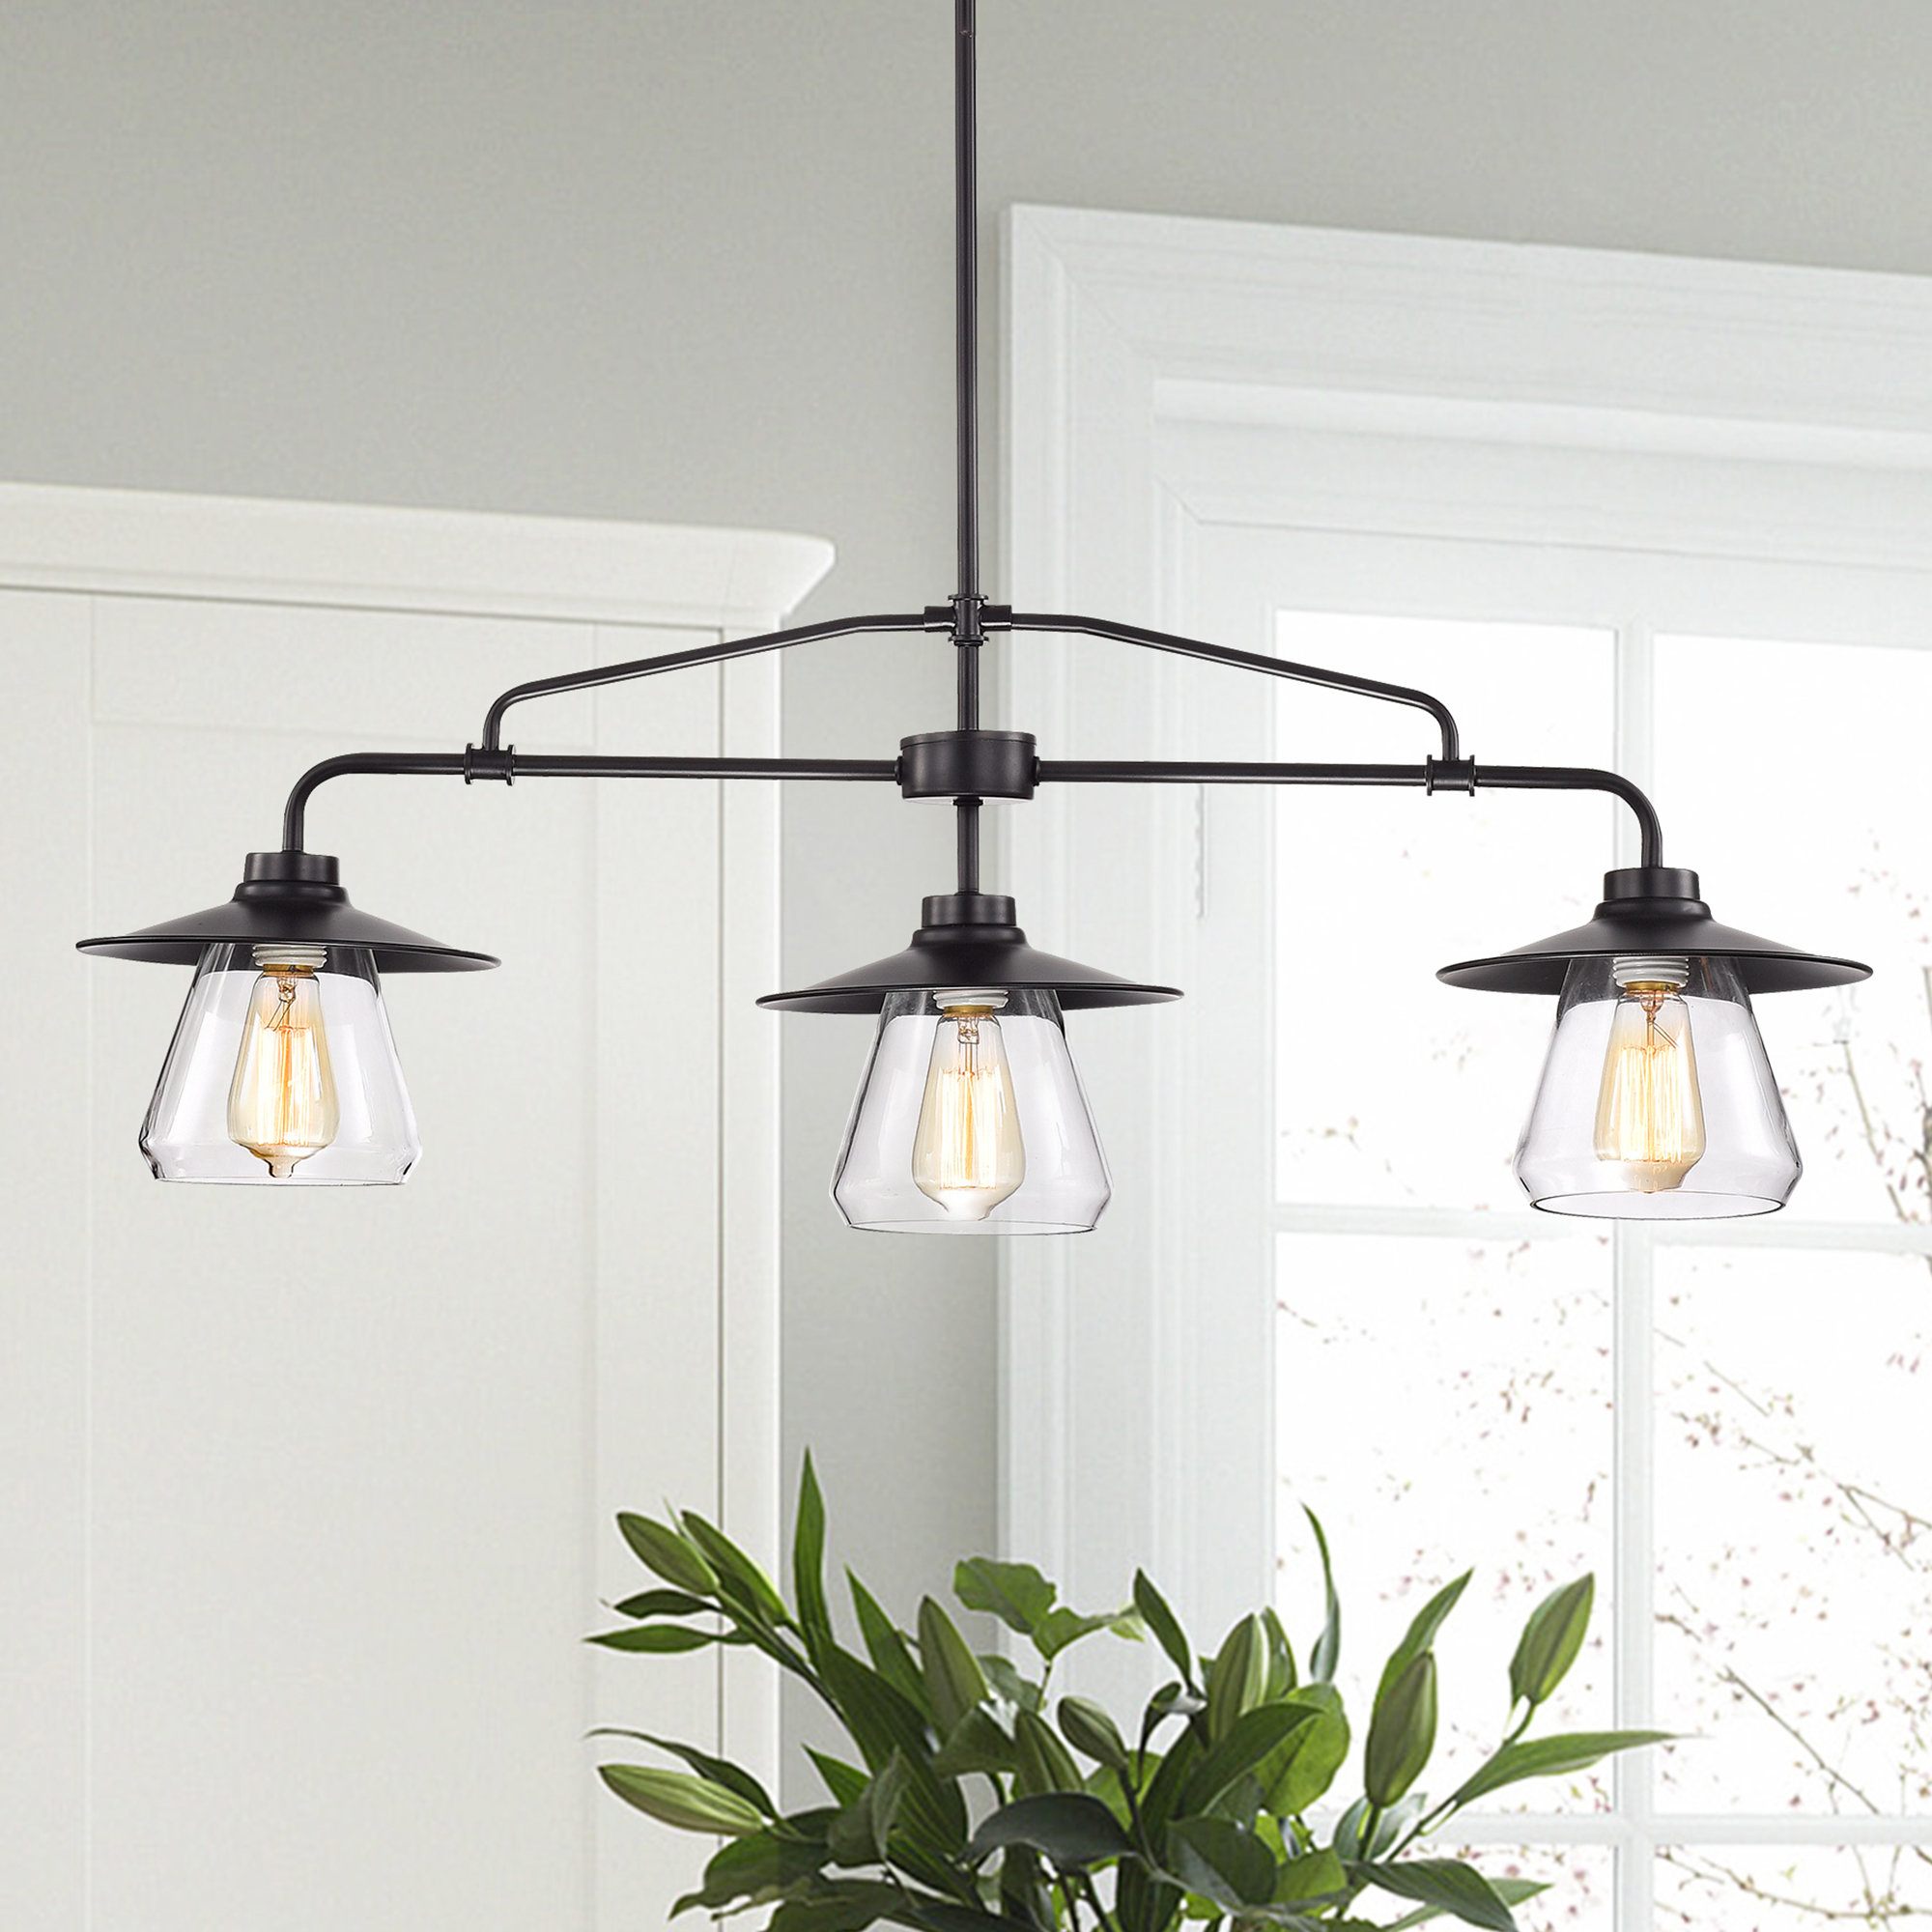 Kitchen Island Pendant Lighting Fixtures   Gnubies With Regard To Ariel 2 Light Kitchen Island Dome Pendants (Photo 11 of 30)